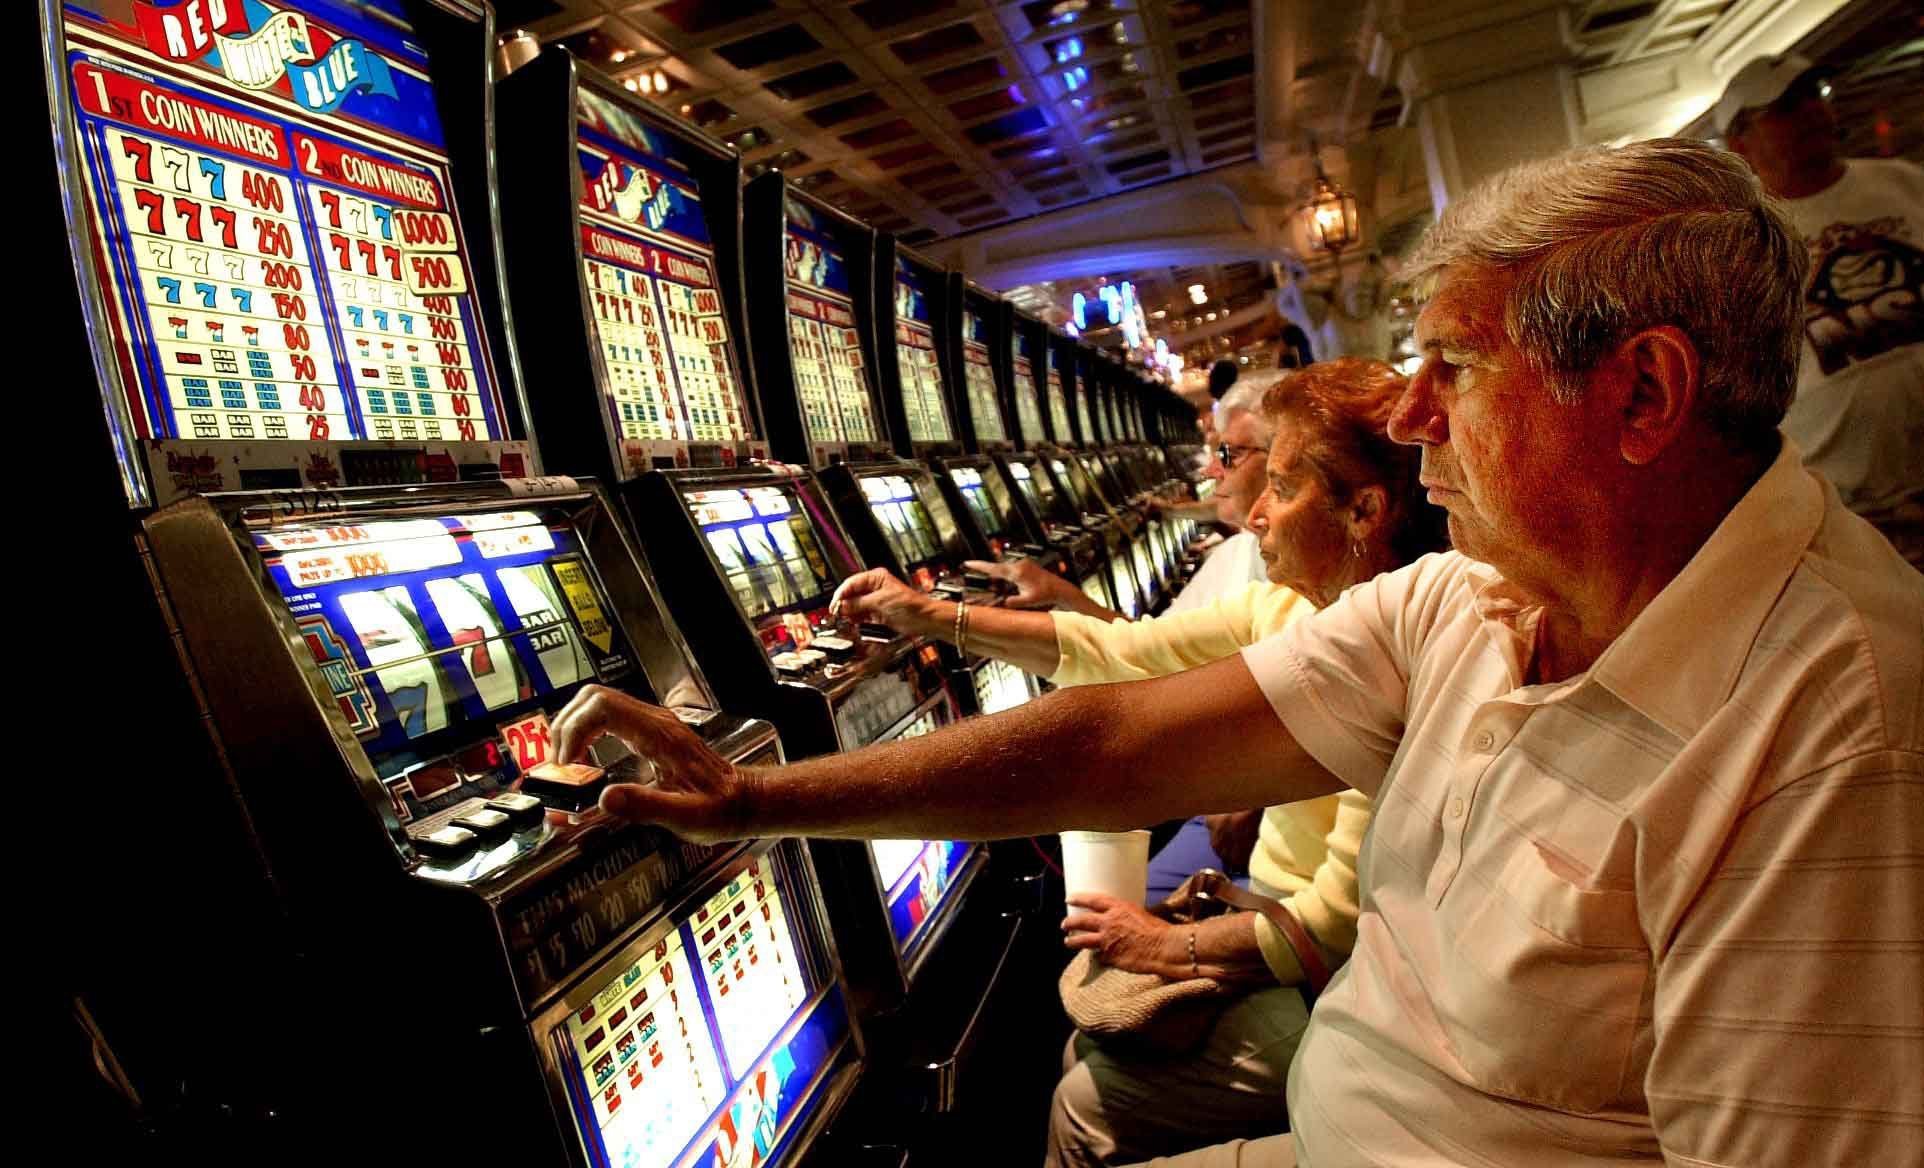 slot-machine-gambling